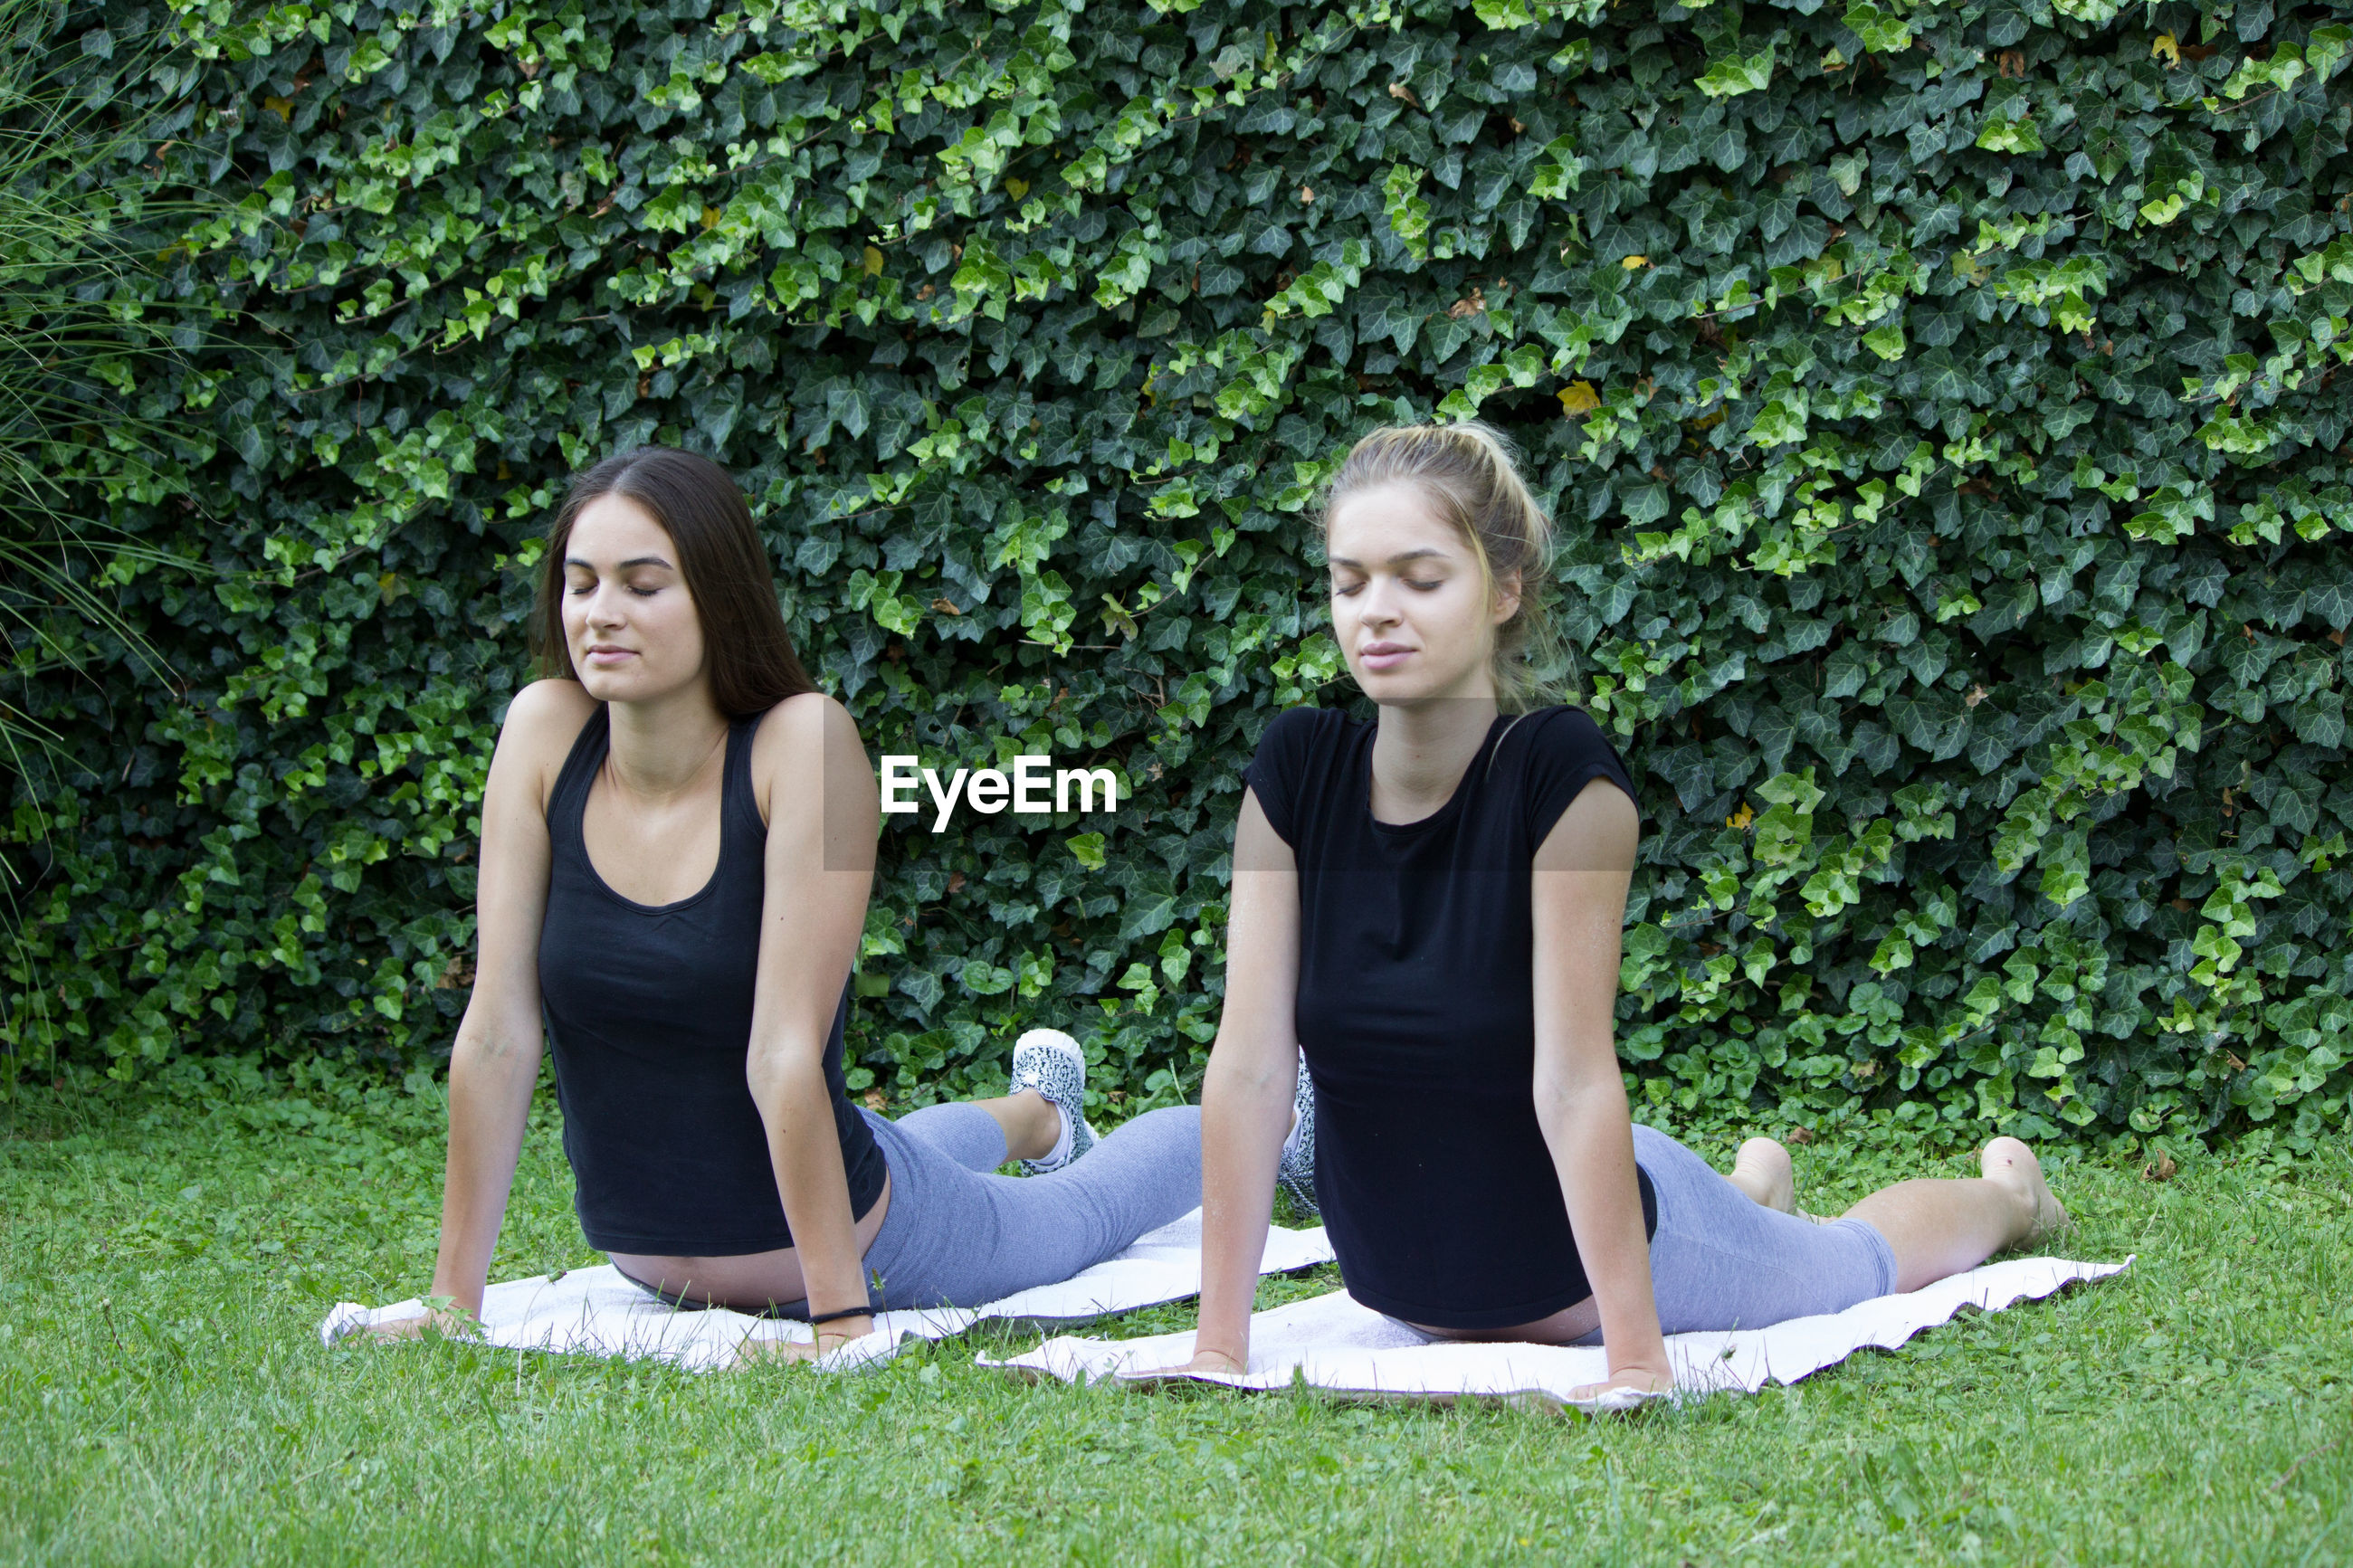 Women with eyes closed exercising against plants in park